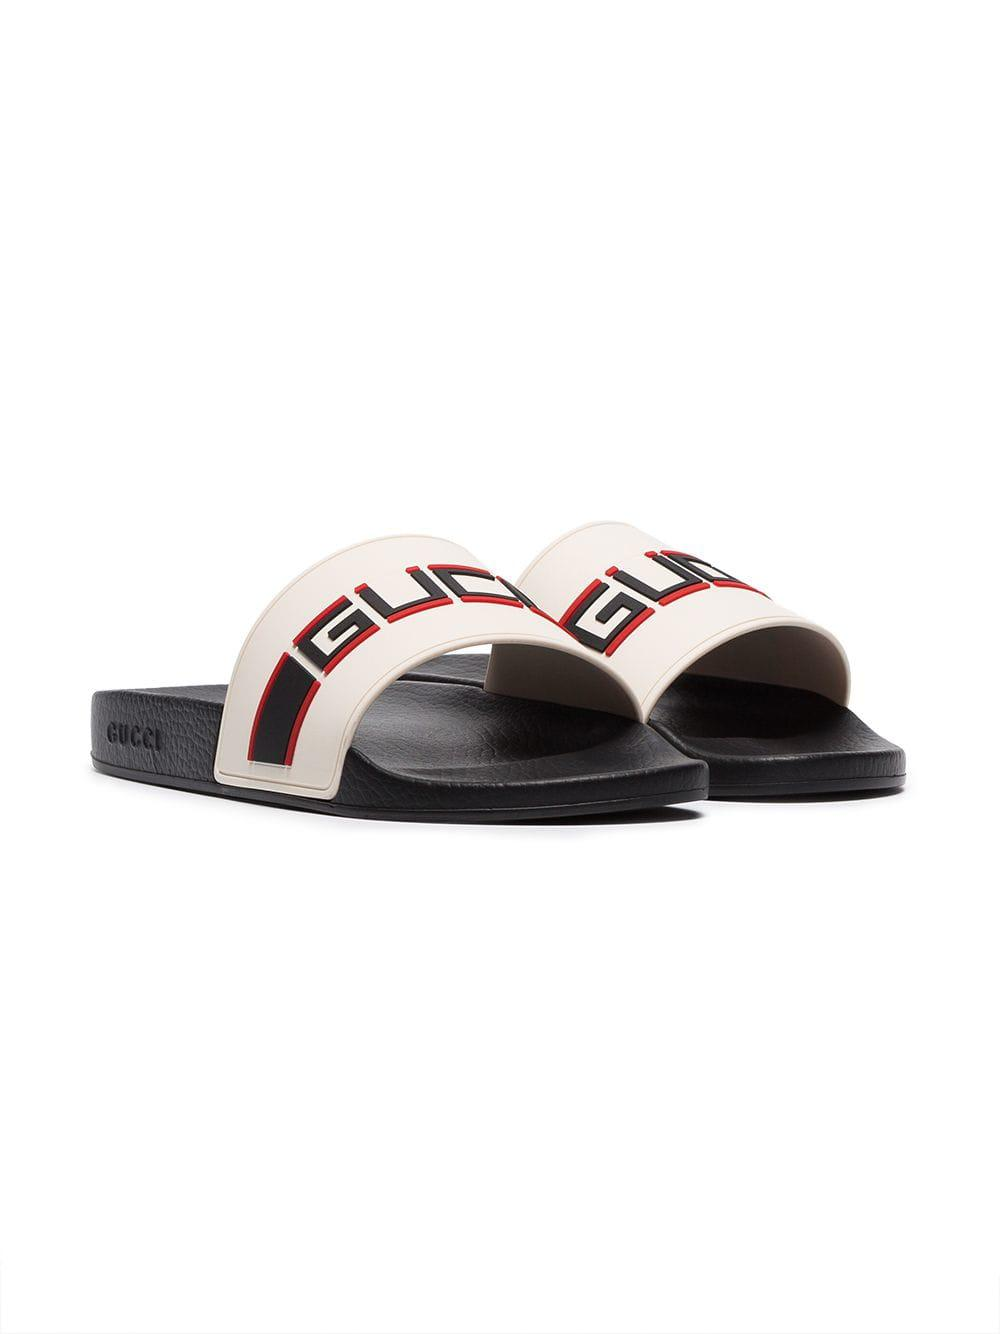 a90925d01 Gucci - White Cream, Black And Red Logo Stripe Rubber Slides for Men -  Lyst. View fullscreen